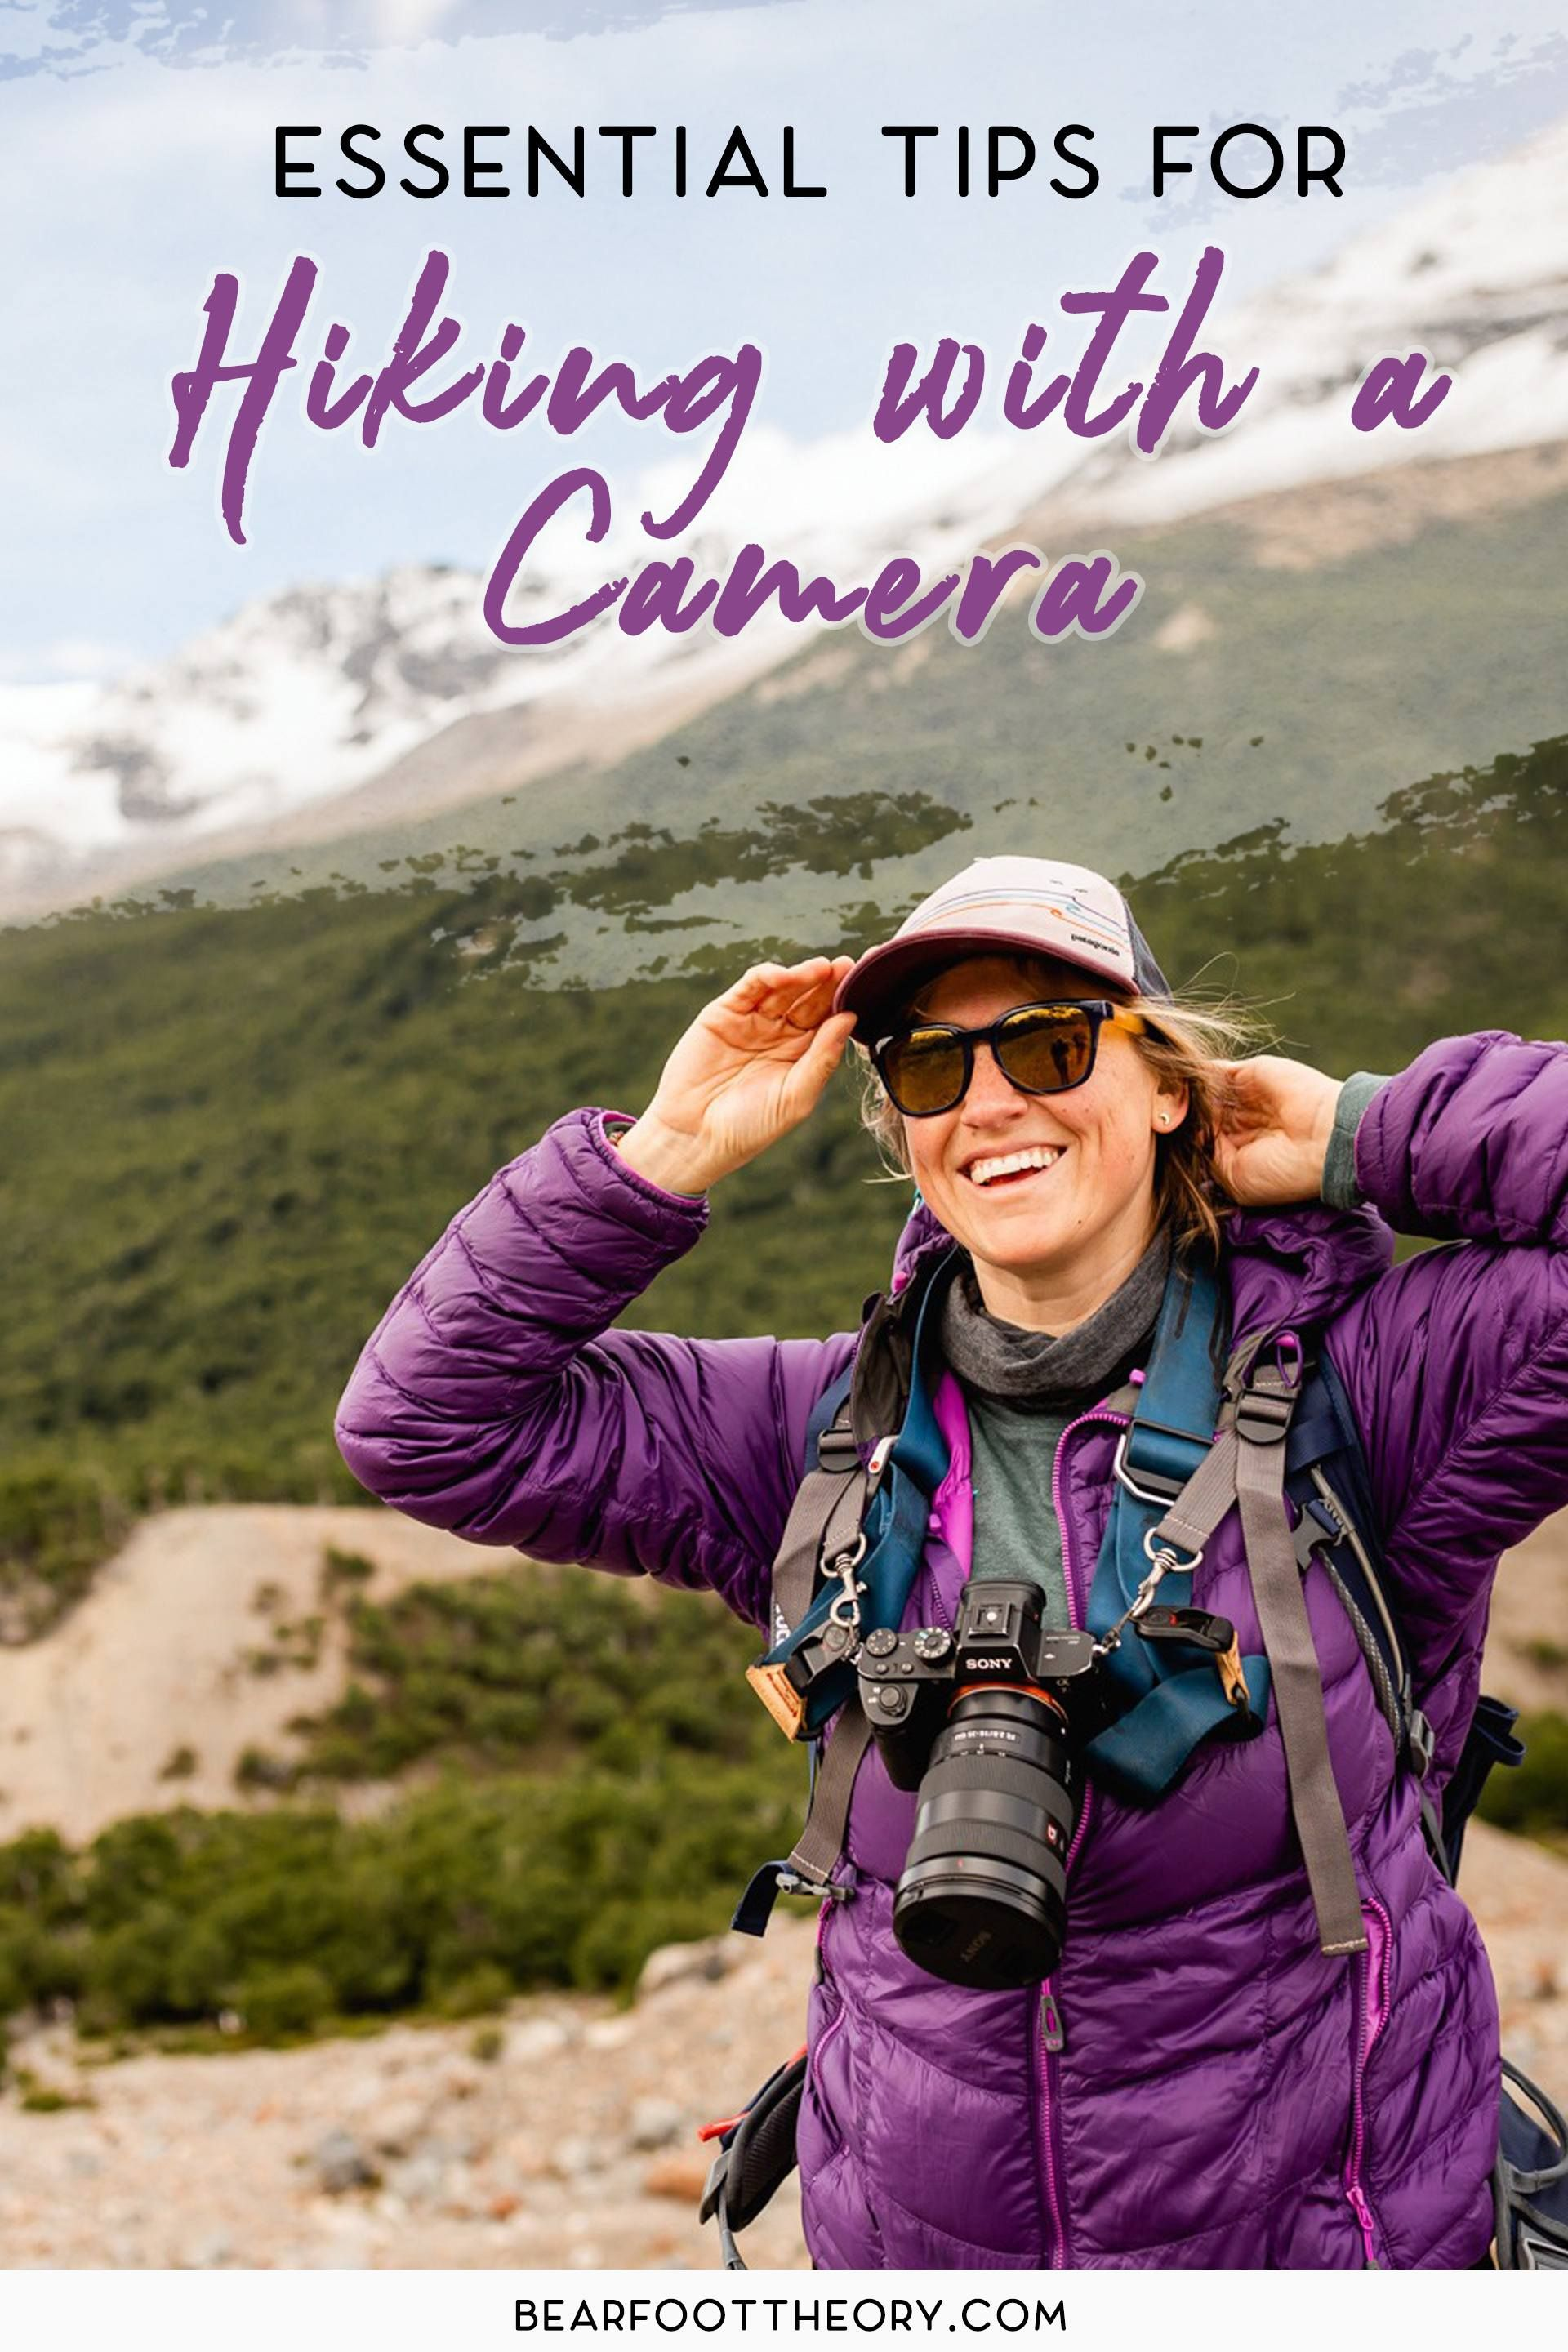 Photo of Essential Tips for Comfortably Hiking with a Camera